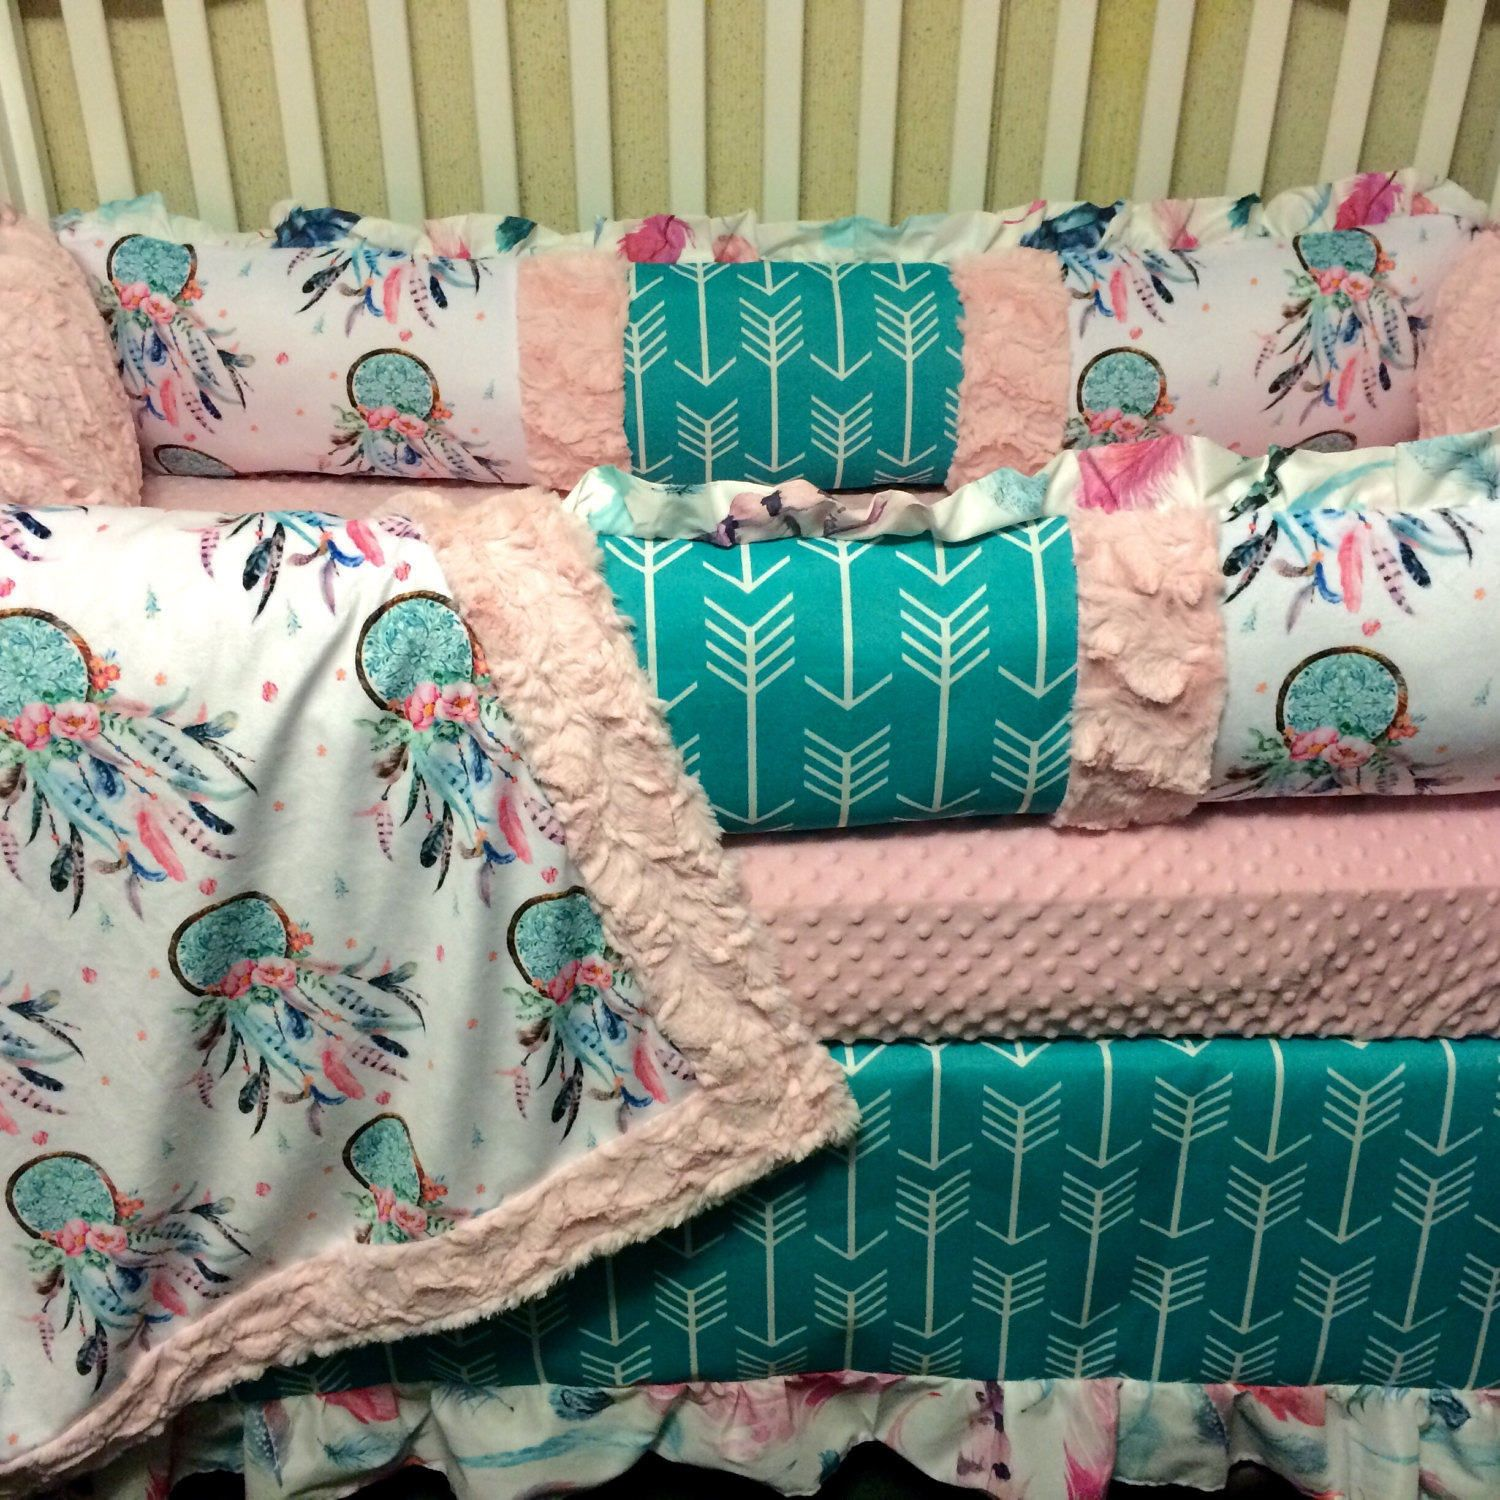 Dream Catcher Crib Bedding Impressive Dream Catcher And Arrows Custom Baby Bedding With Pink And Teal Review